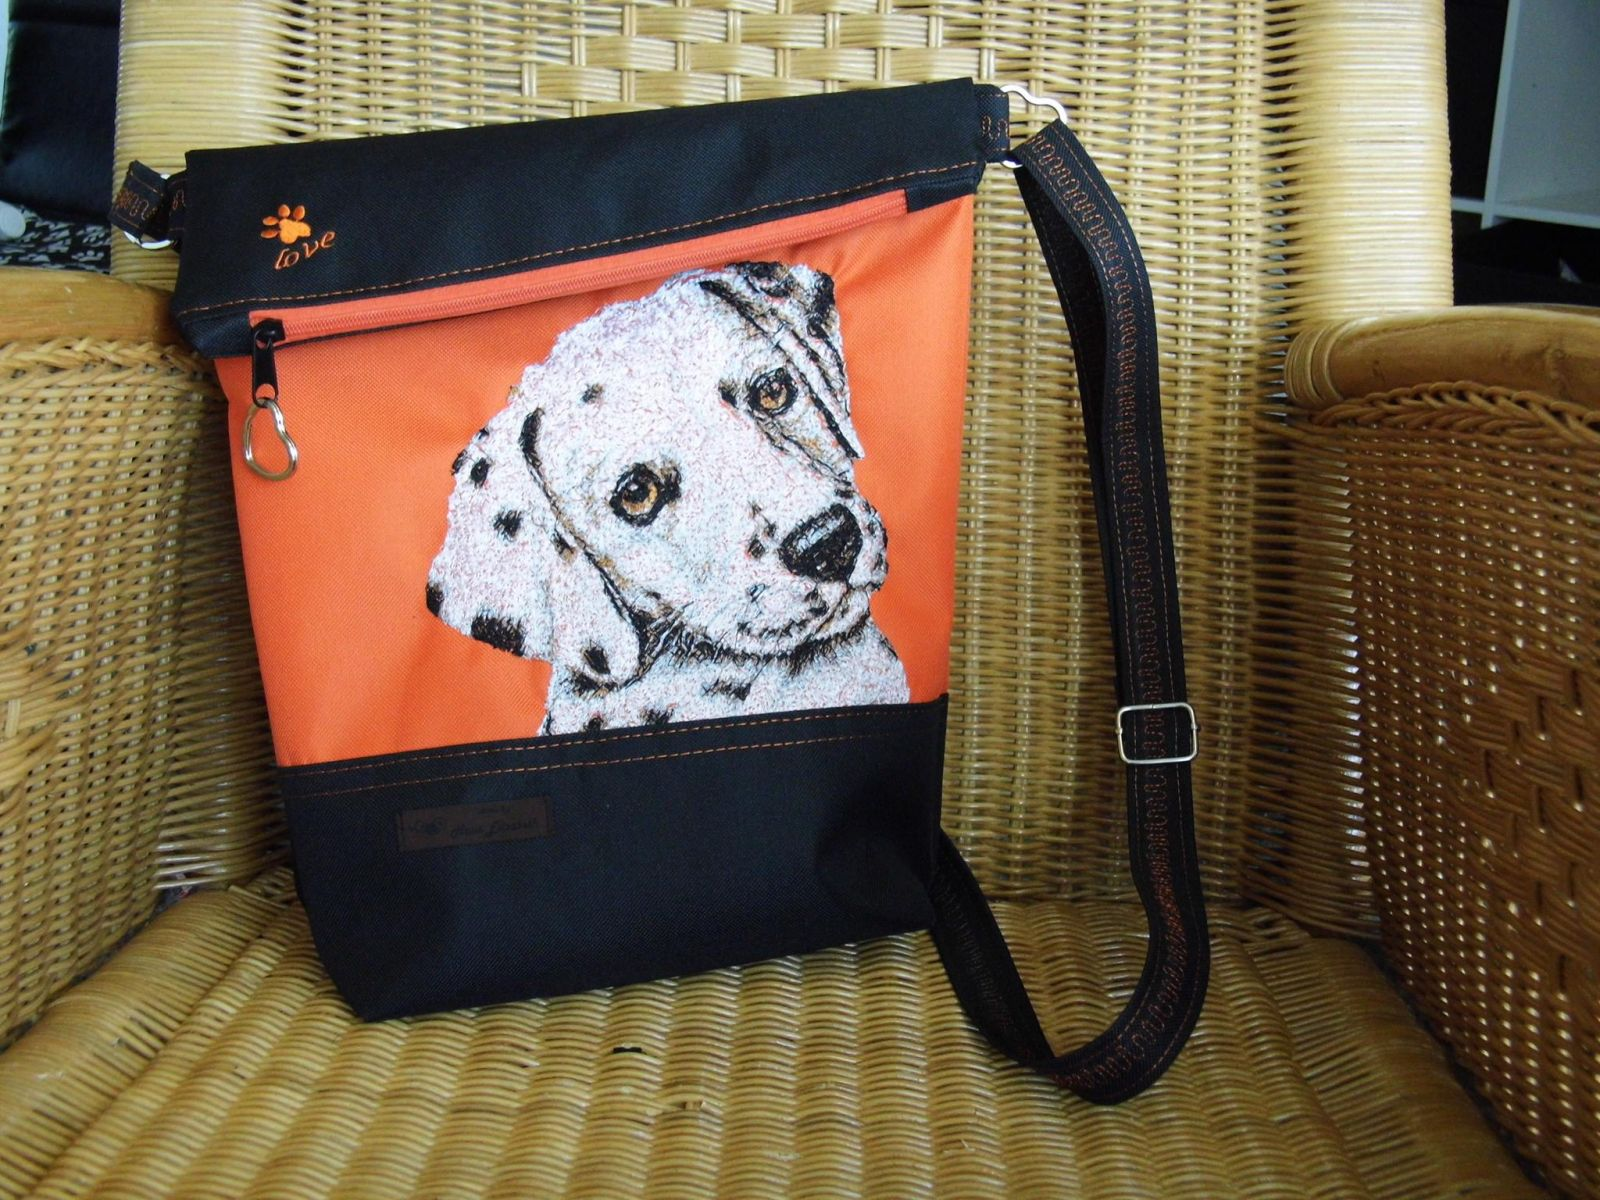 Bag with dog free machin embroidery design